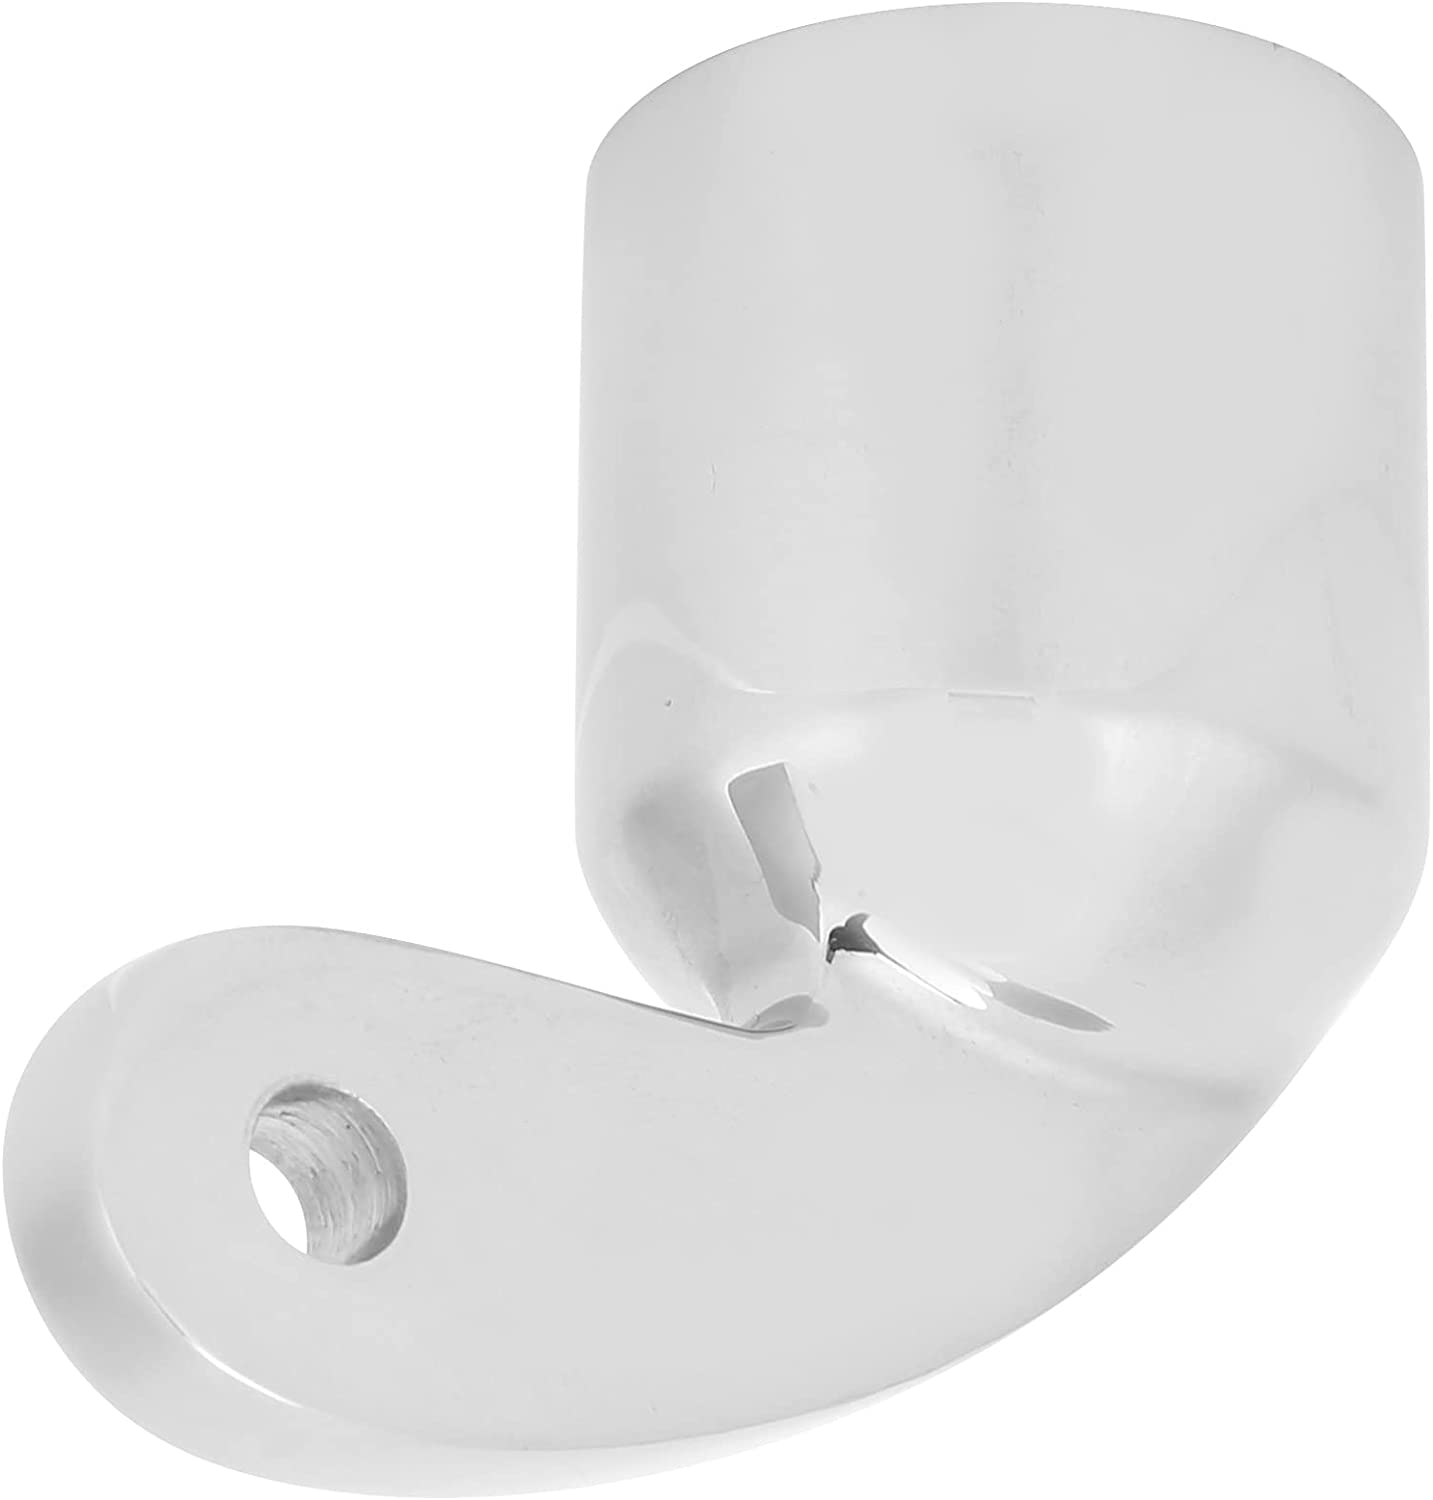 FECAMOS Hinge Slide Beauty products Easy to Marine L Hardware Cheap sale Providing Install